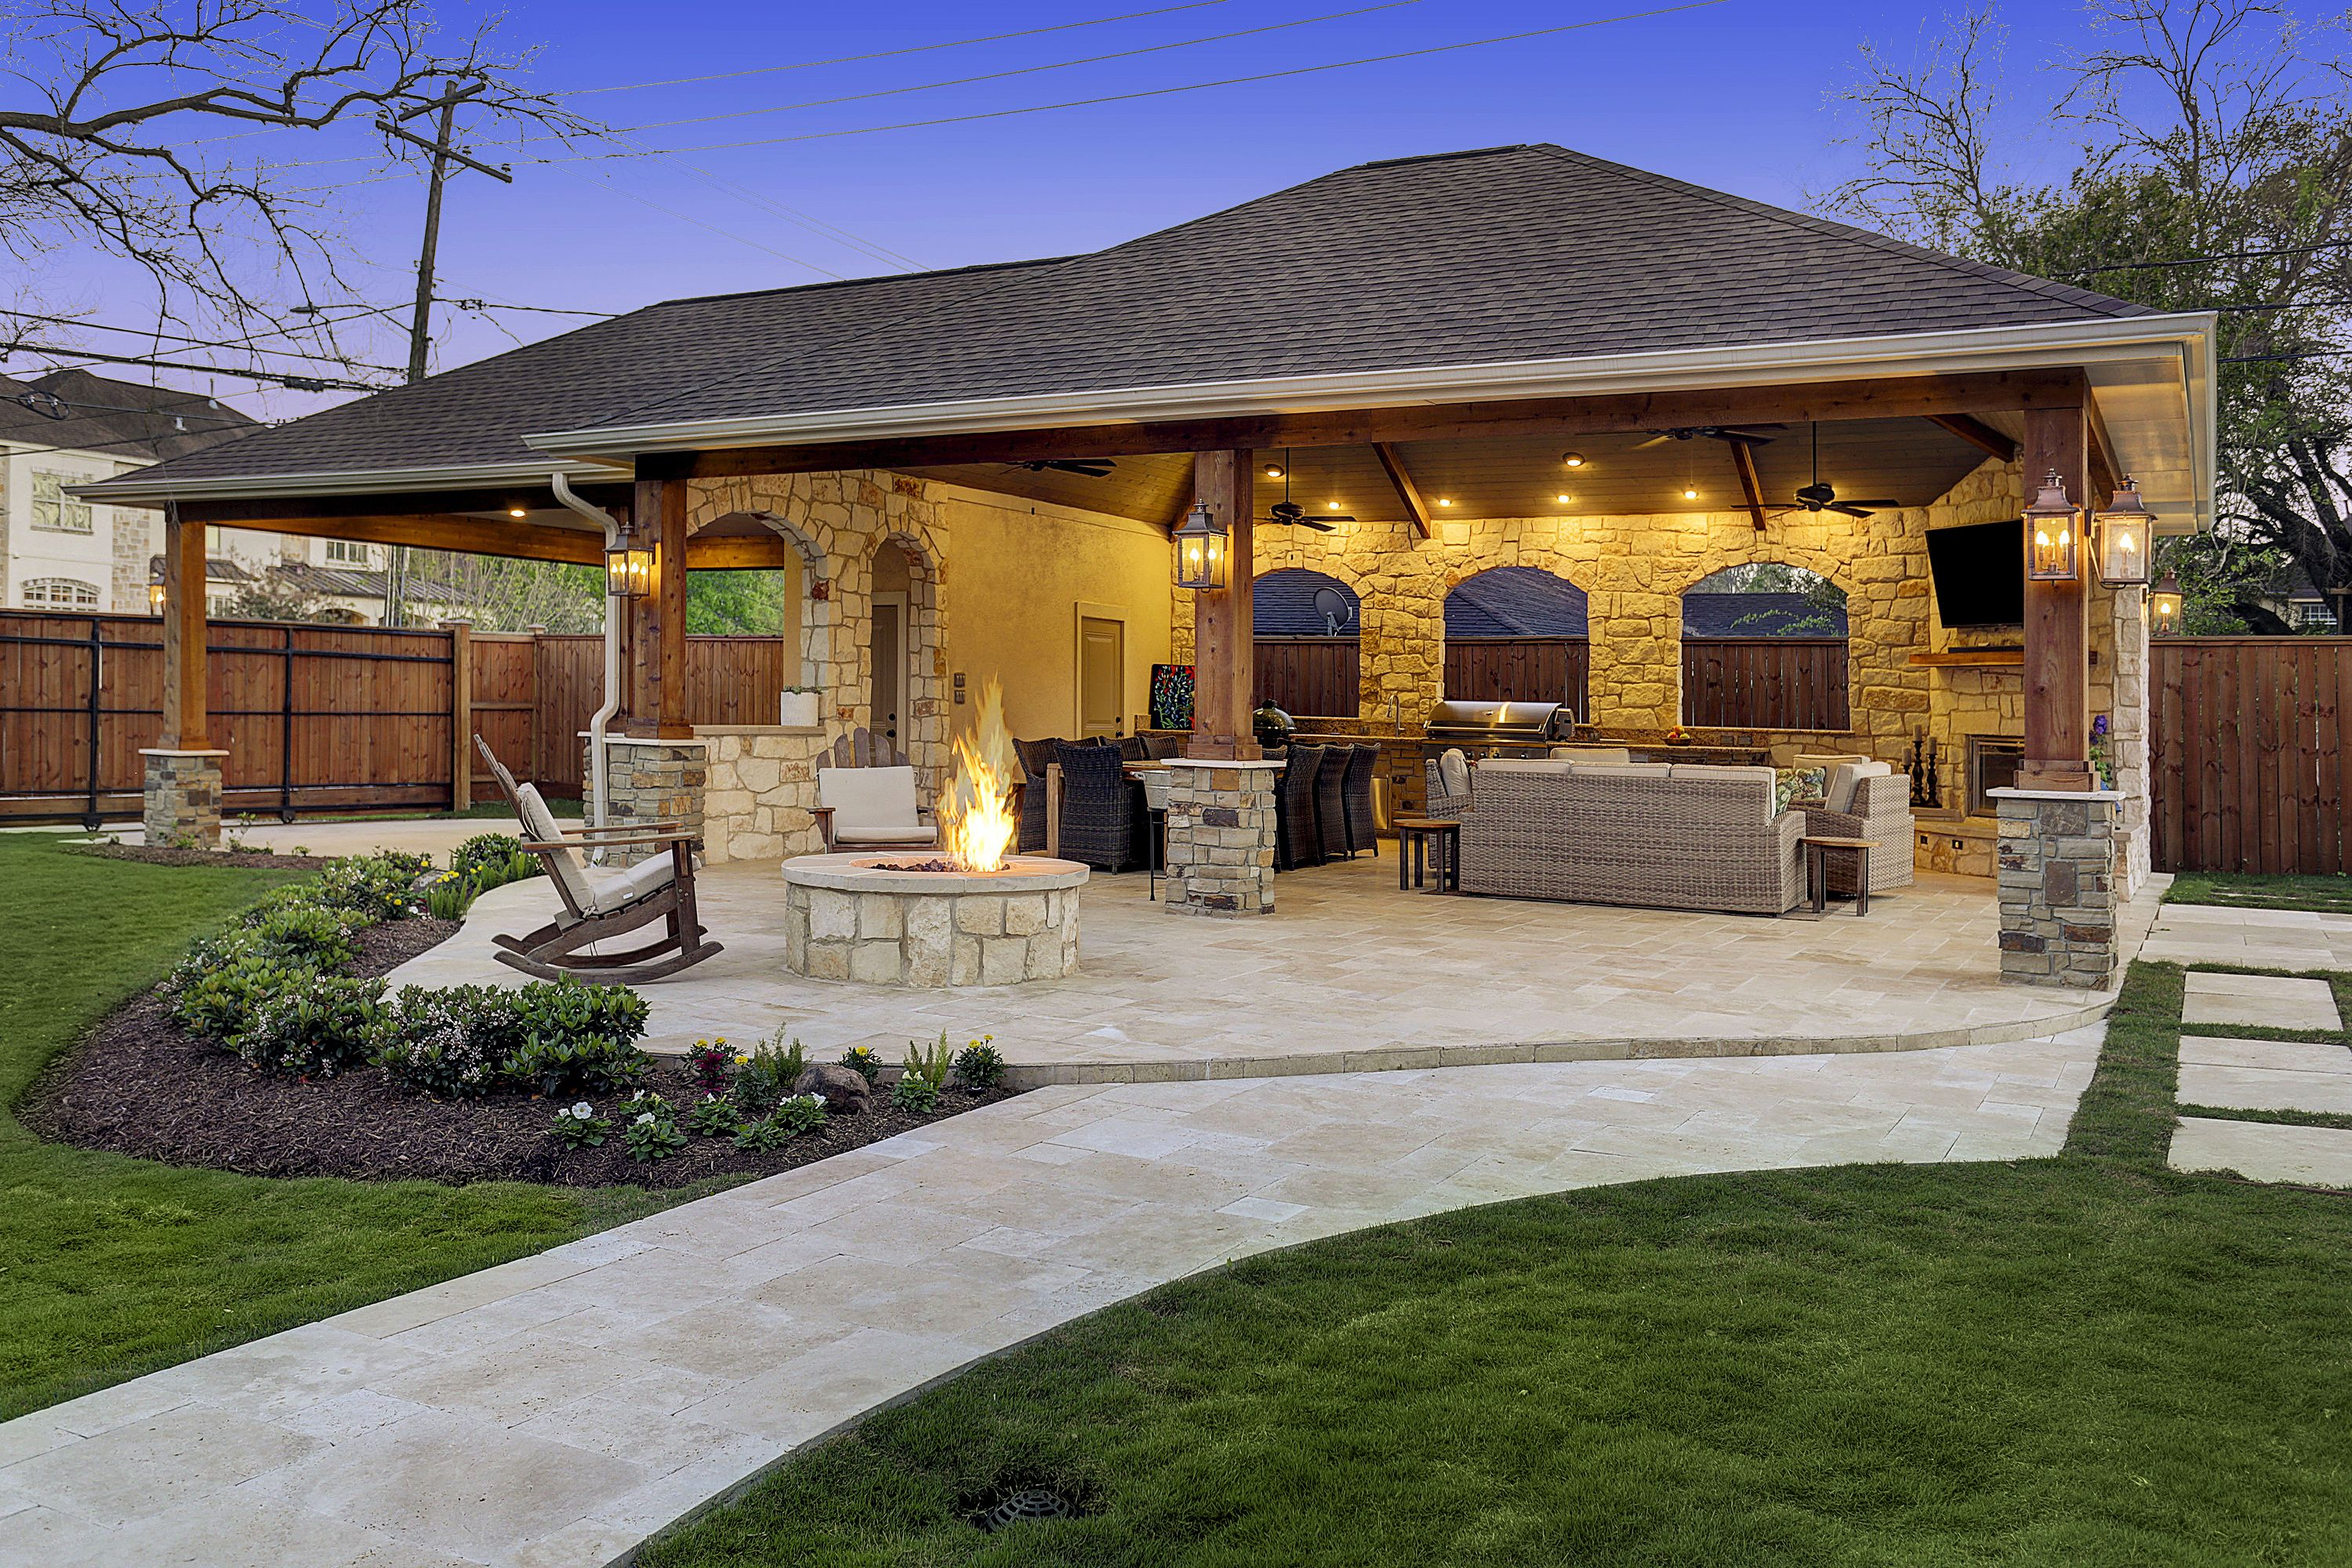 This Homeowner Wanted An Extended Outdoor Living Area In Order To Create Their Own Perso Outdoor Living Space Design Outdoor Covered Patio Outdoor Living Areas